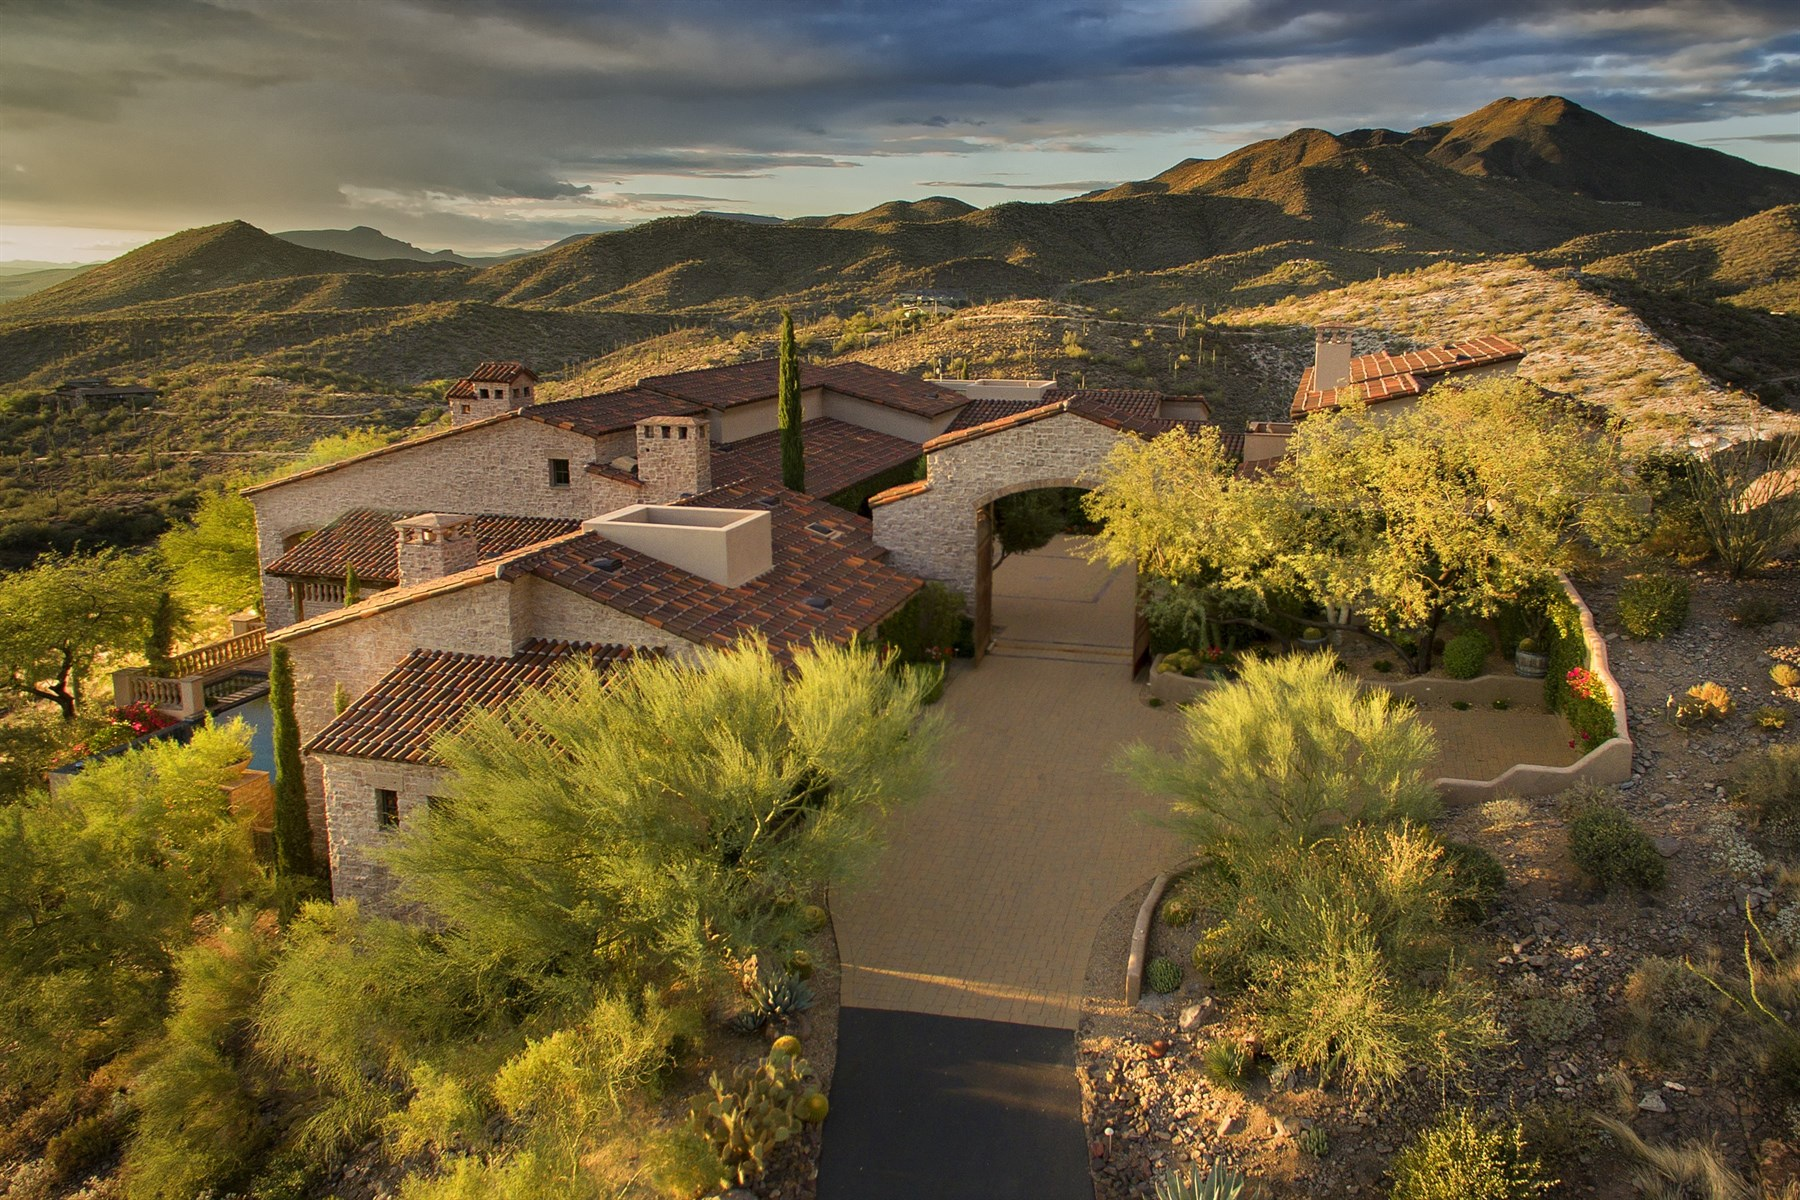 Single Family Home for Sale at Private gated 6+ acre estate perched on a hillside in Carefree Ranch 39429 N Tom Morris Rd Scottsdale, Arizona, 85262 United States